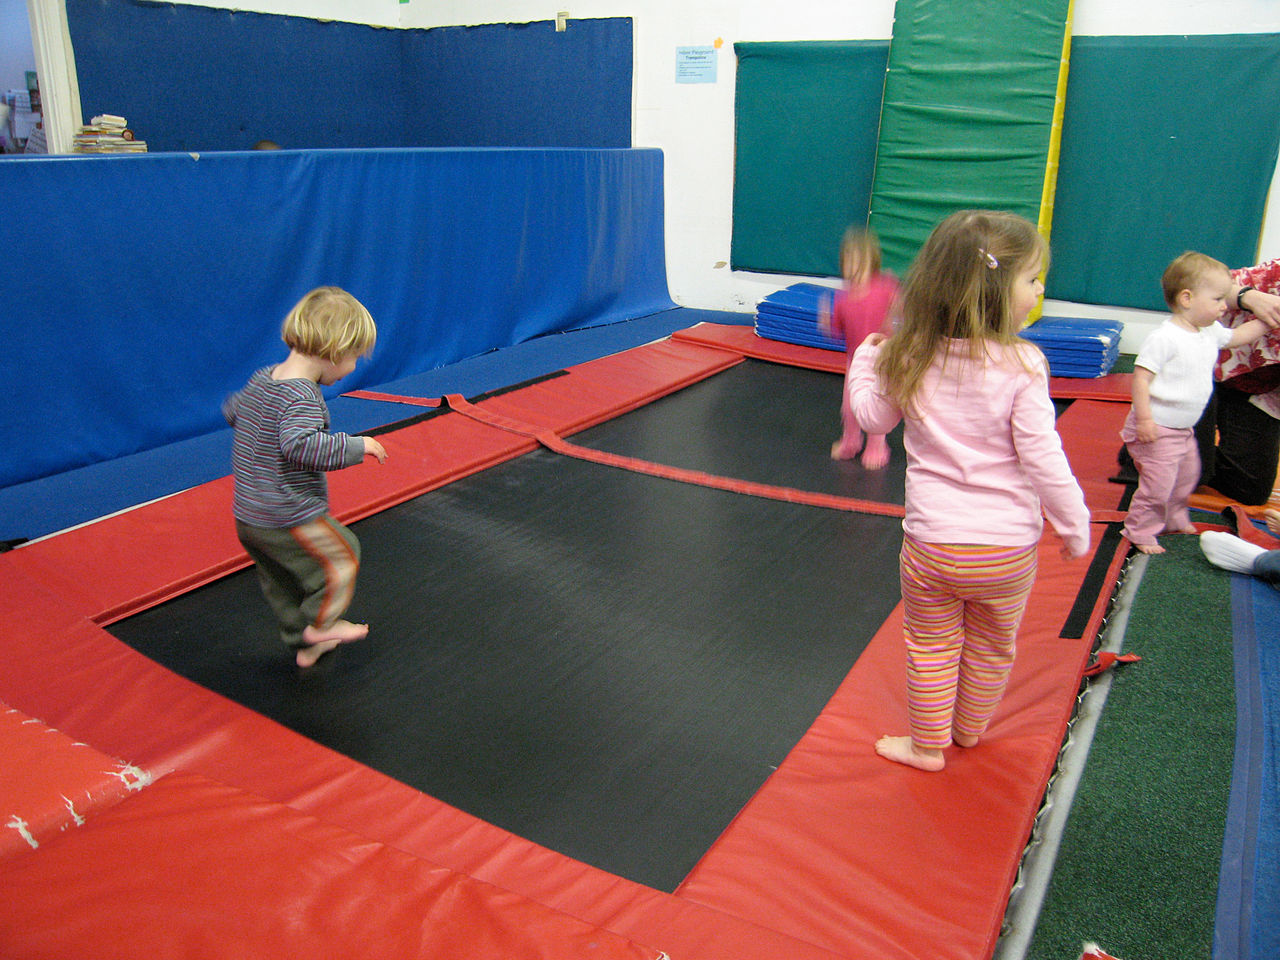 Children playing at the trampoline